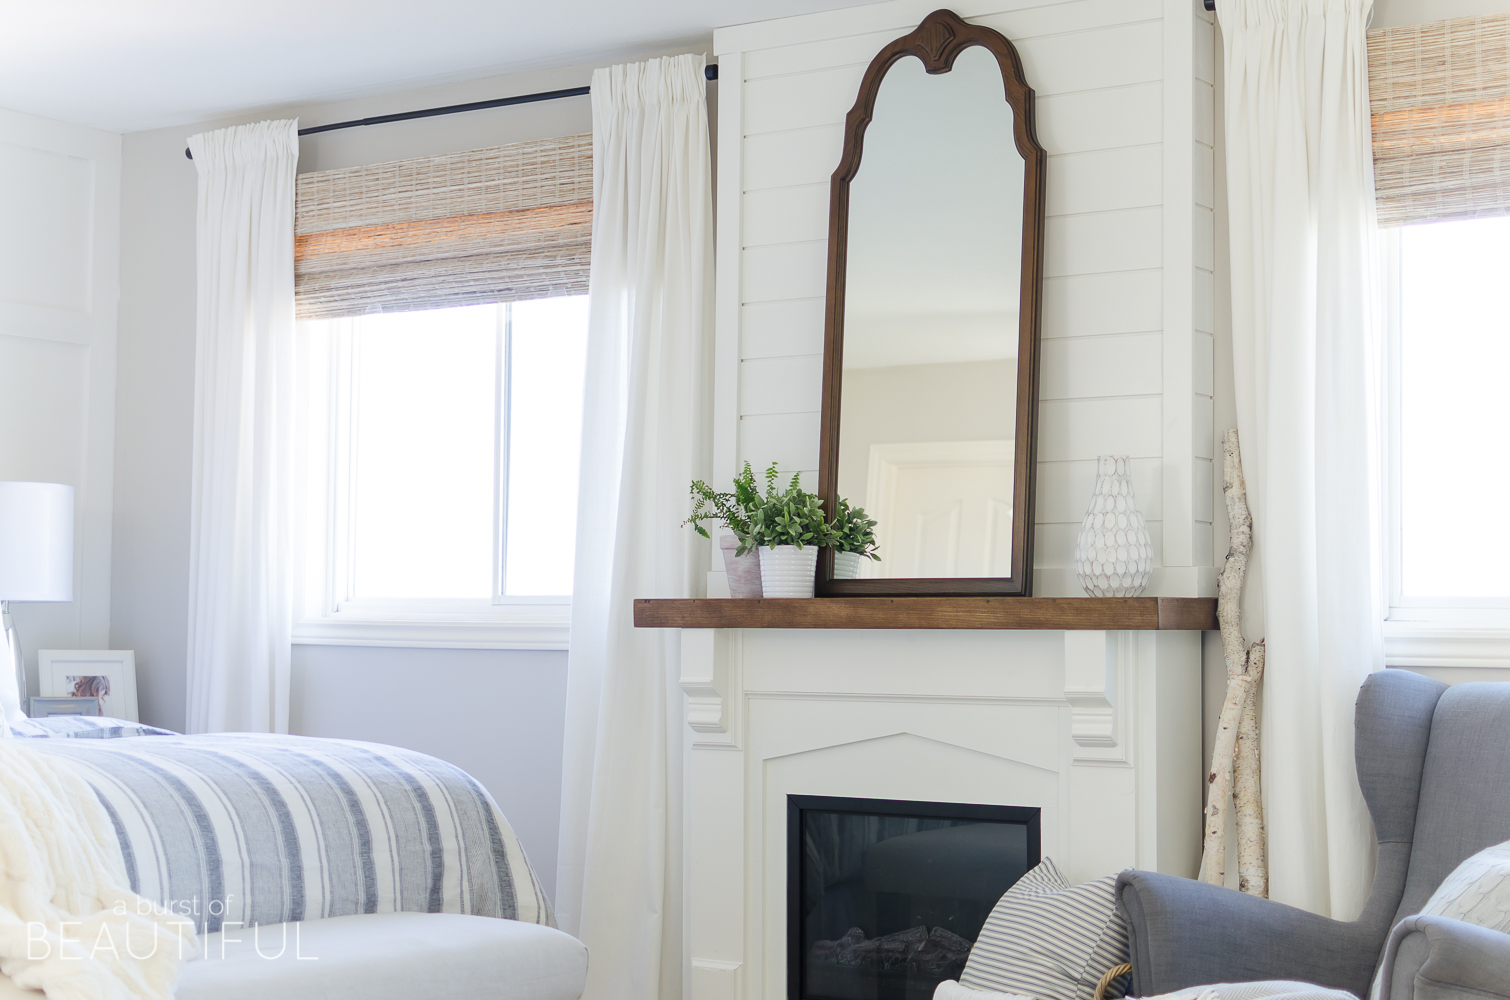 Woven wood shades add texture, color and warmth to this modern farmhouse